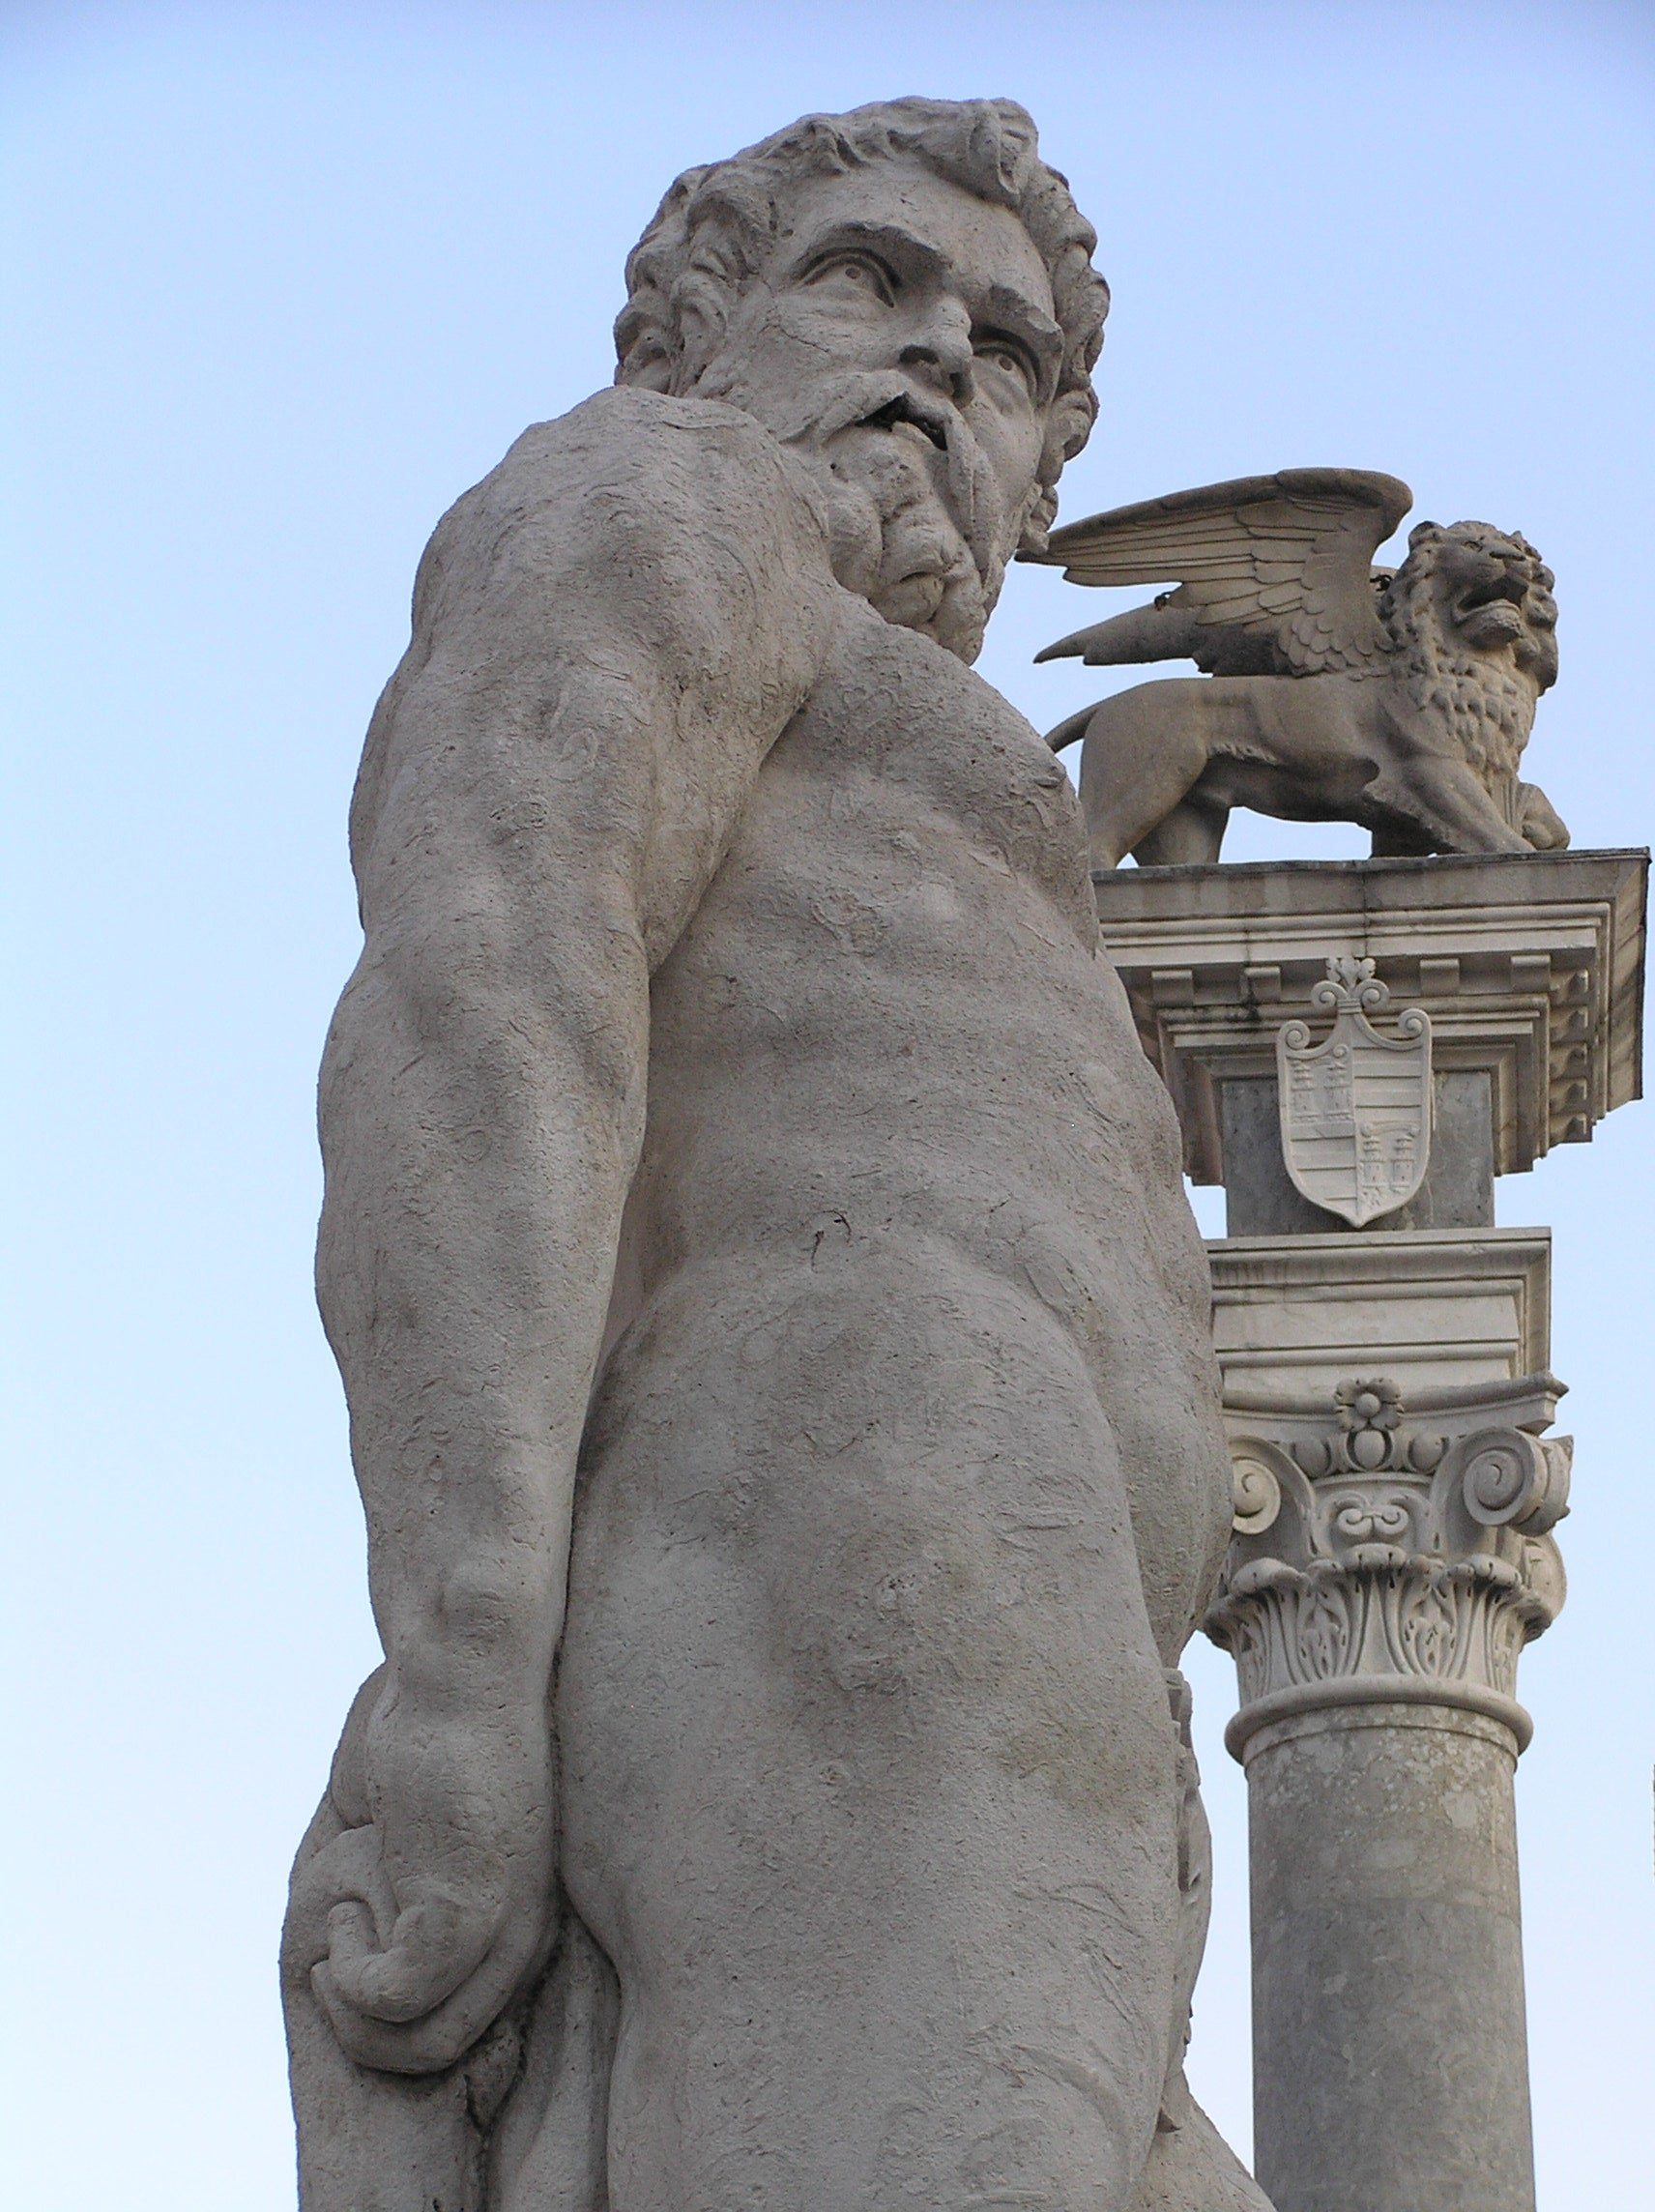 Statues of Ercole and Caco